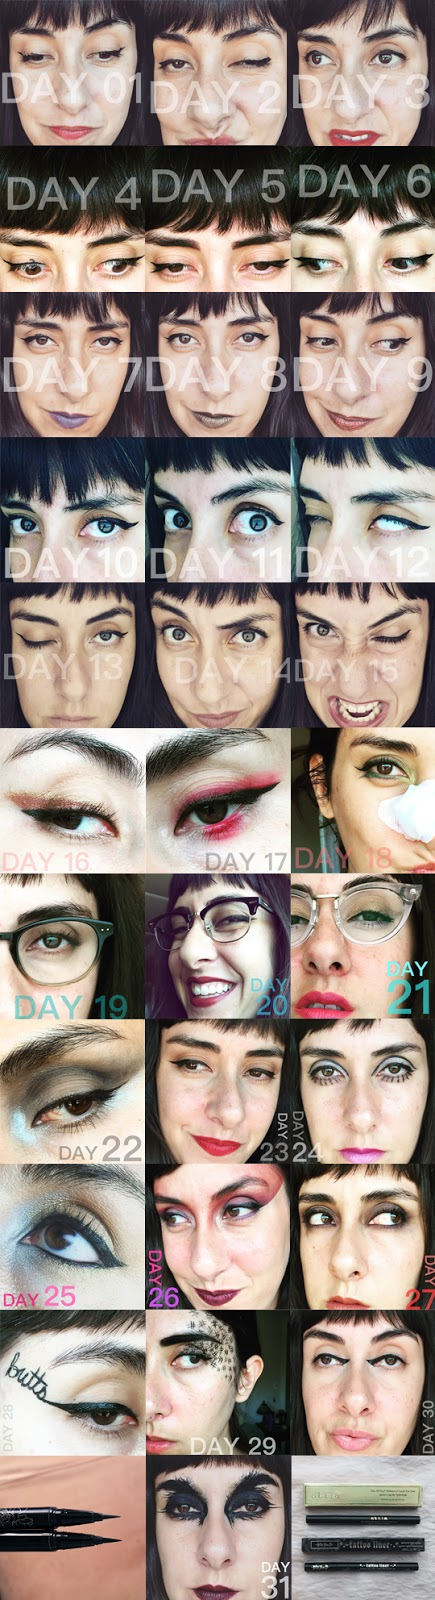 31 Days of Liquid Eyeliner :: Results!